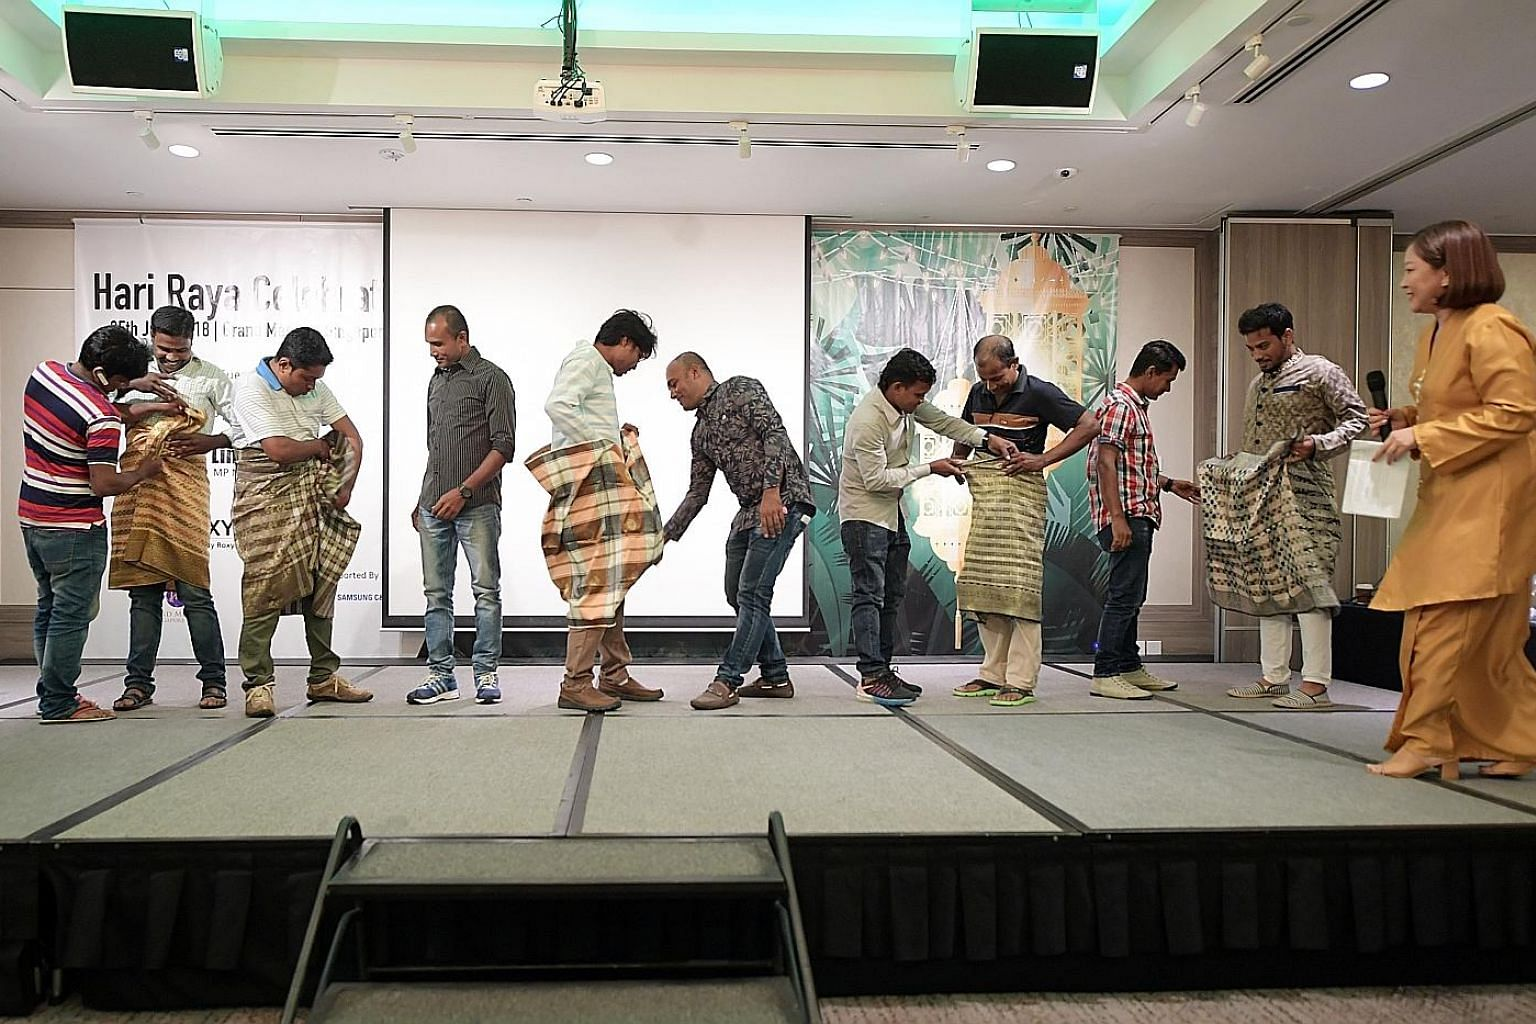 Foreign workers trying to knot a samping - a short version of a sarong - during a game at a dinner organised by Roxy Foundation and Samsung C&T Corporation last night. The dinner, held at Grand Mercure Singapore Roxy to mark Hari Raya Aidilfitri, was